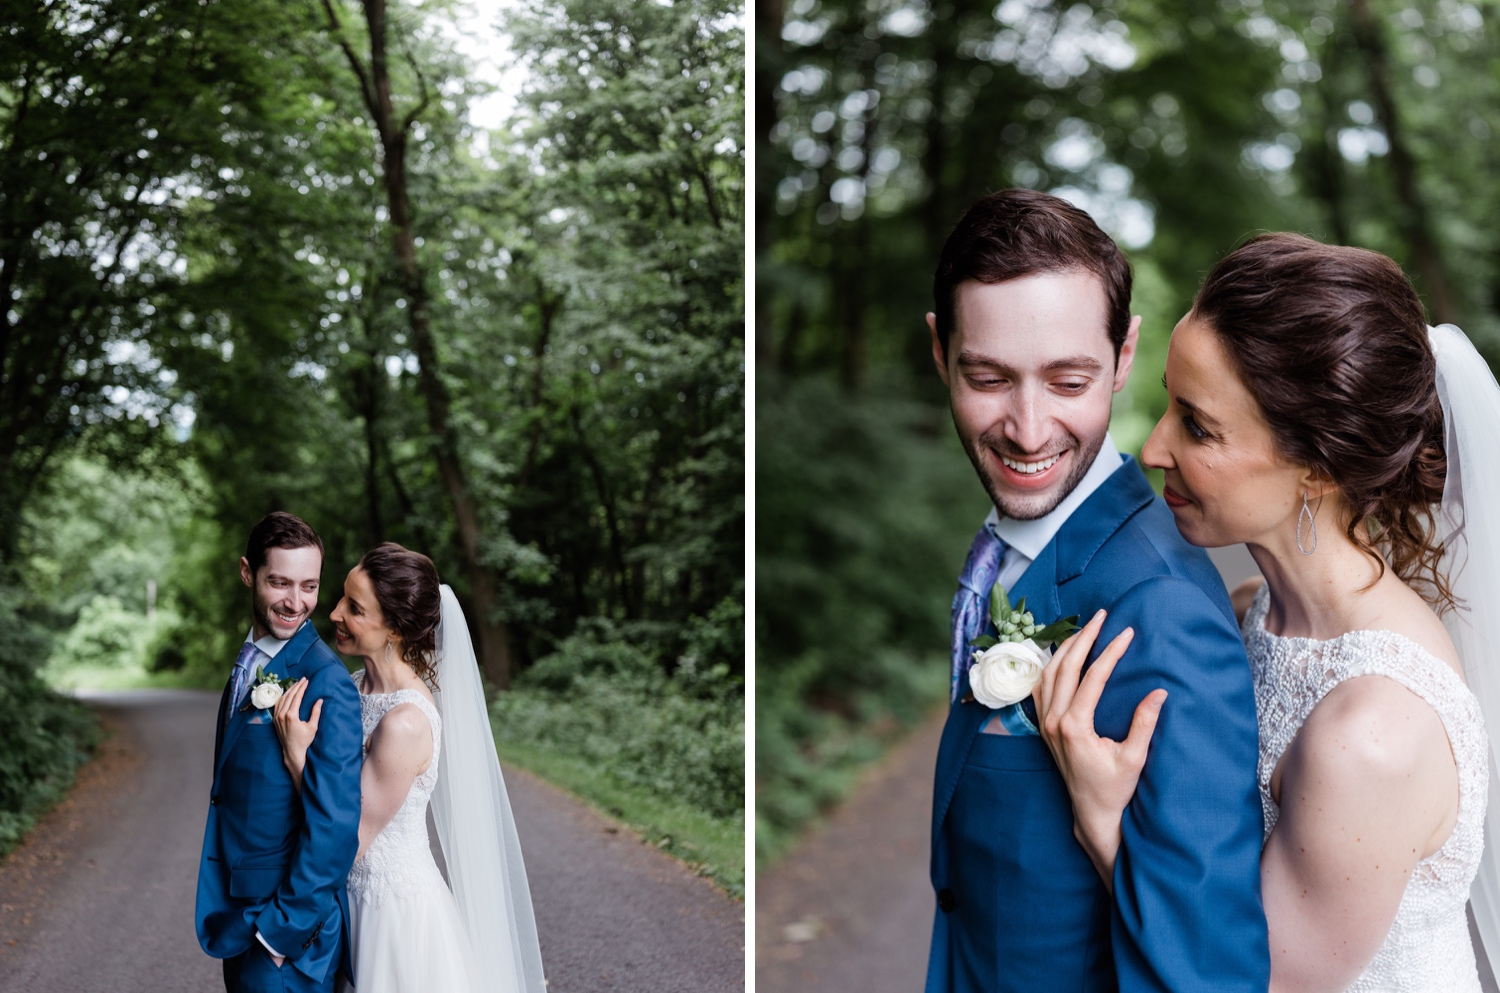 The Garrison Wedding, The Garrison venue, Hudson Valley wedding, hudson valley wedding photographer, catskills wedding photographer, the garrison wedding photos, best catskills wedding photographer, poses, couple poses ideas, wedding photo inspiration, 2019 wedding ideas